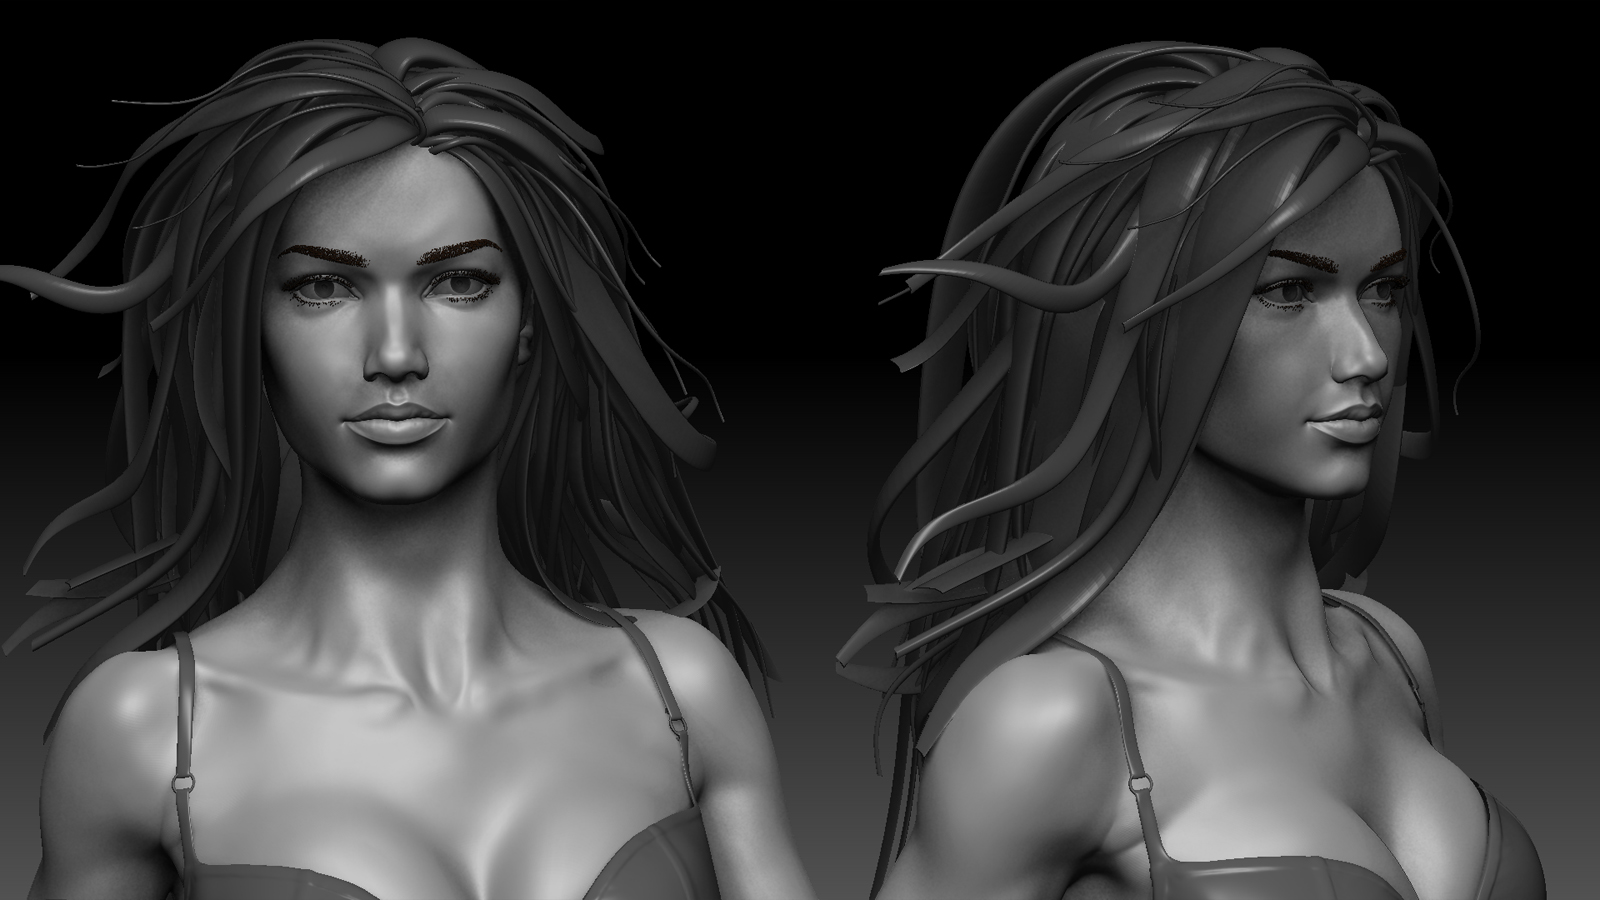 adriana_final_face_composite_smooth_shade.jpg